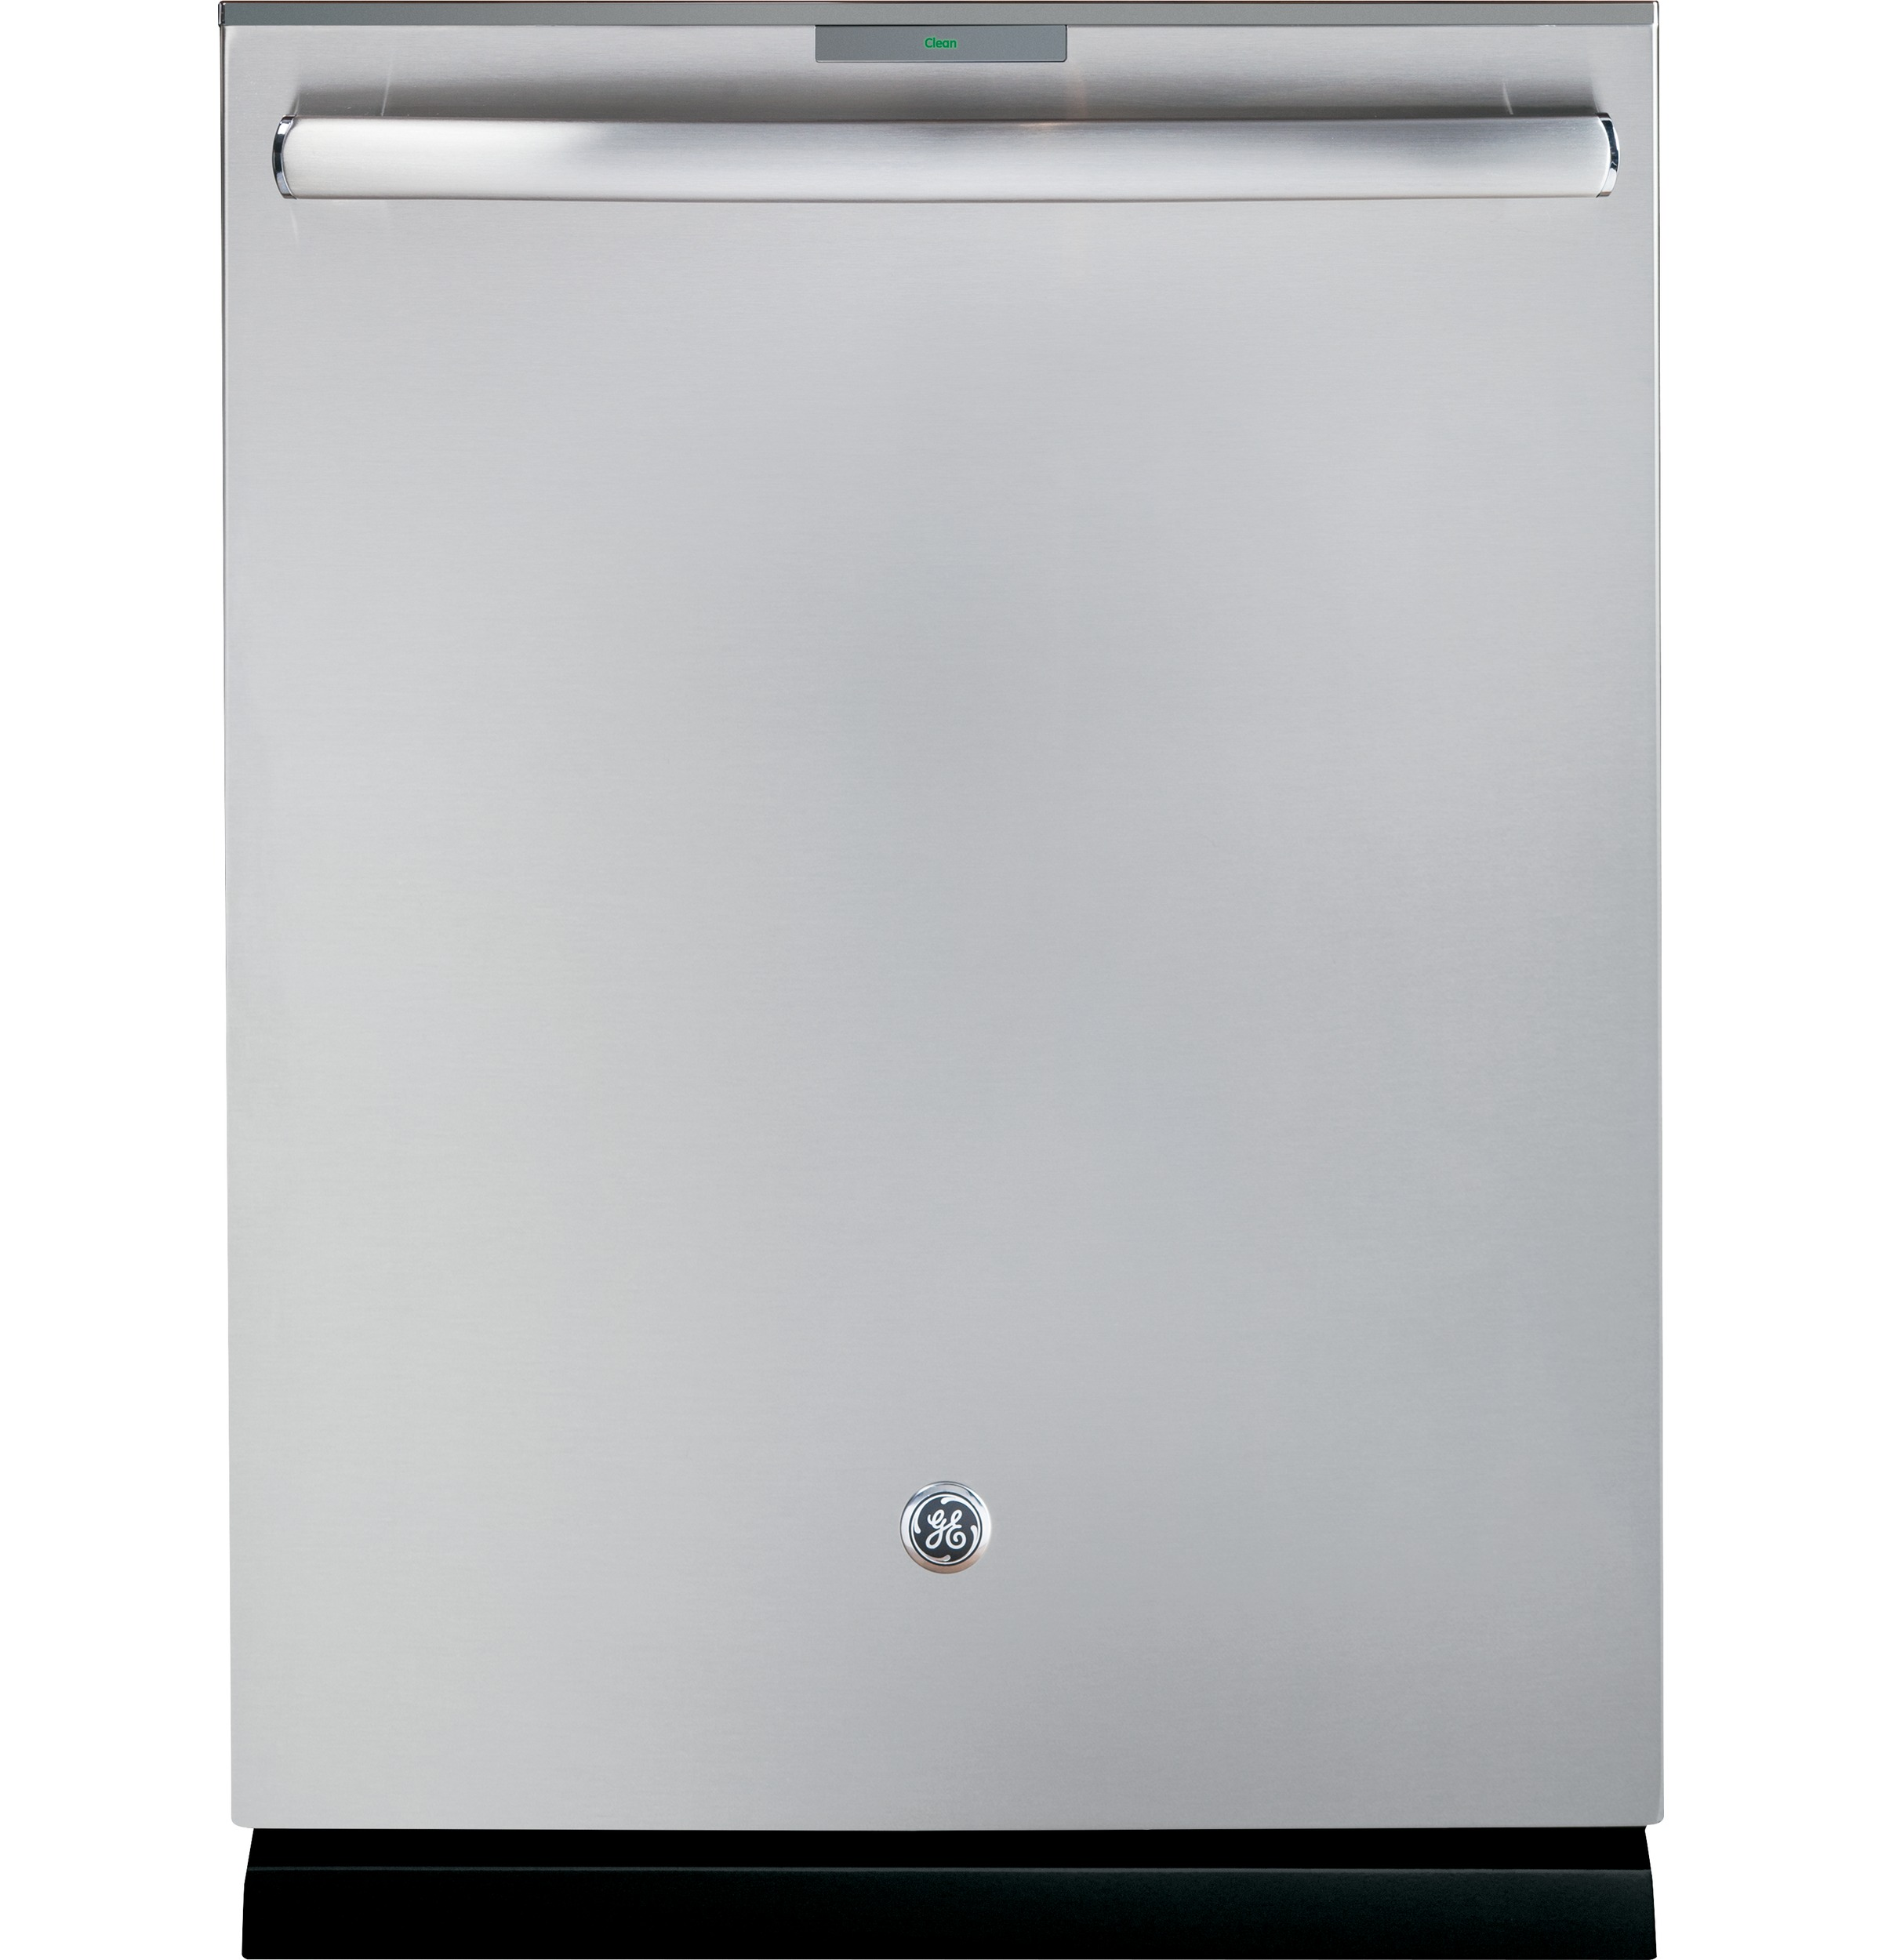 GE Profile™ Series Stainless Steel Interior Dishwasher with Hidden Controls